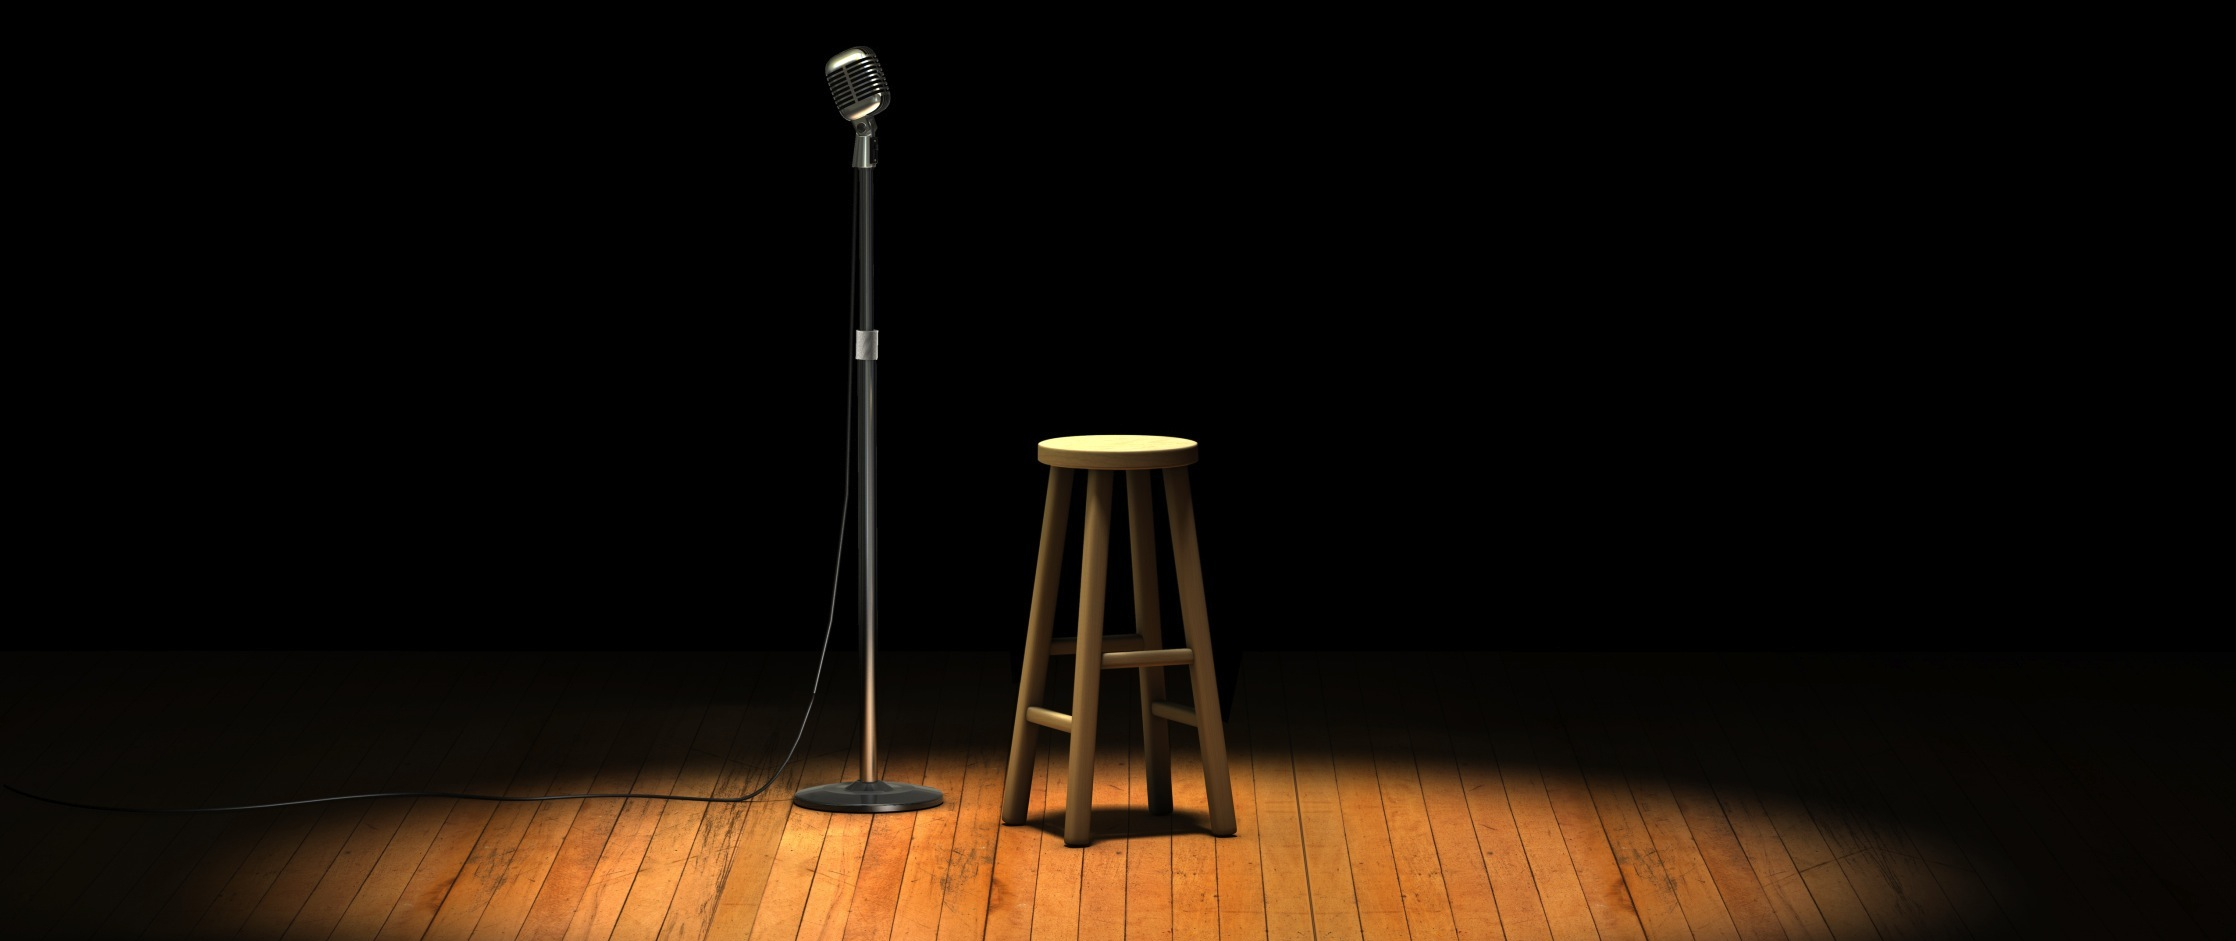 Swell Comedy Central Holding A Comedy Festival On Twitter And Vine Gmtry Best Dining Table And Chair Ideas Images Gmtryco